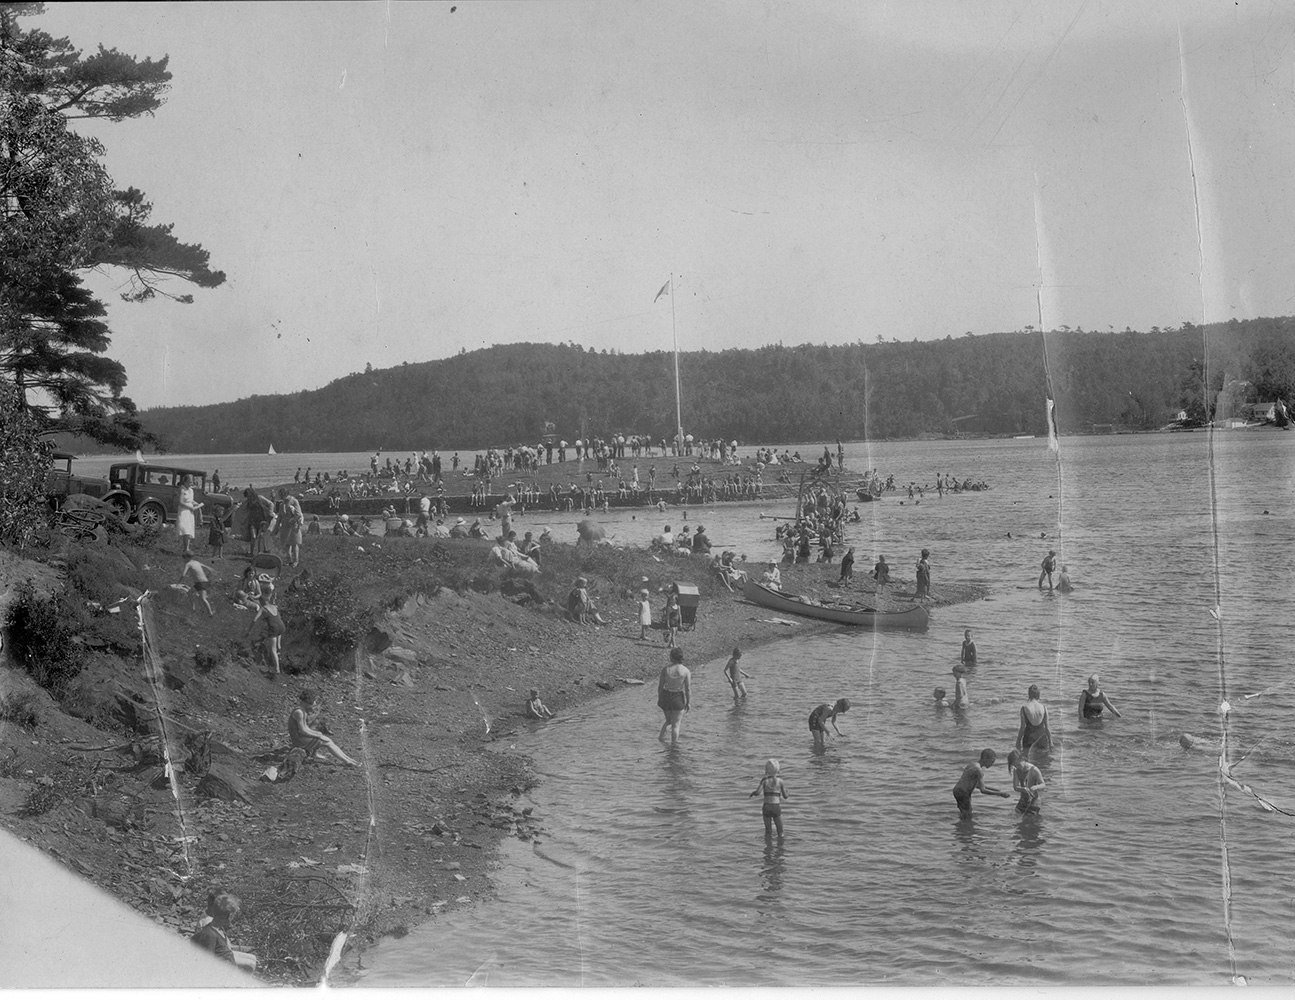 Black and white image of Bathers enjoy the waters of Northwest Arm at Horseshoe Island on Regatta Day, 1912 [102-106-1-7 (cropped from original)]